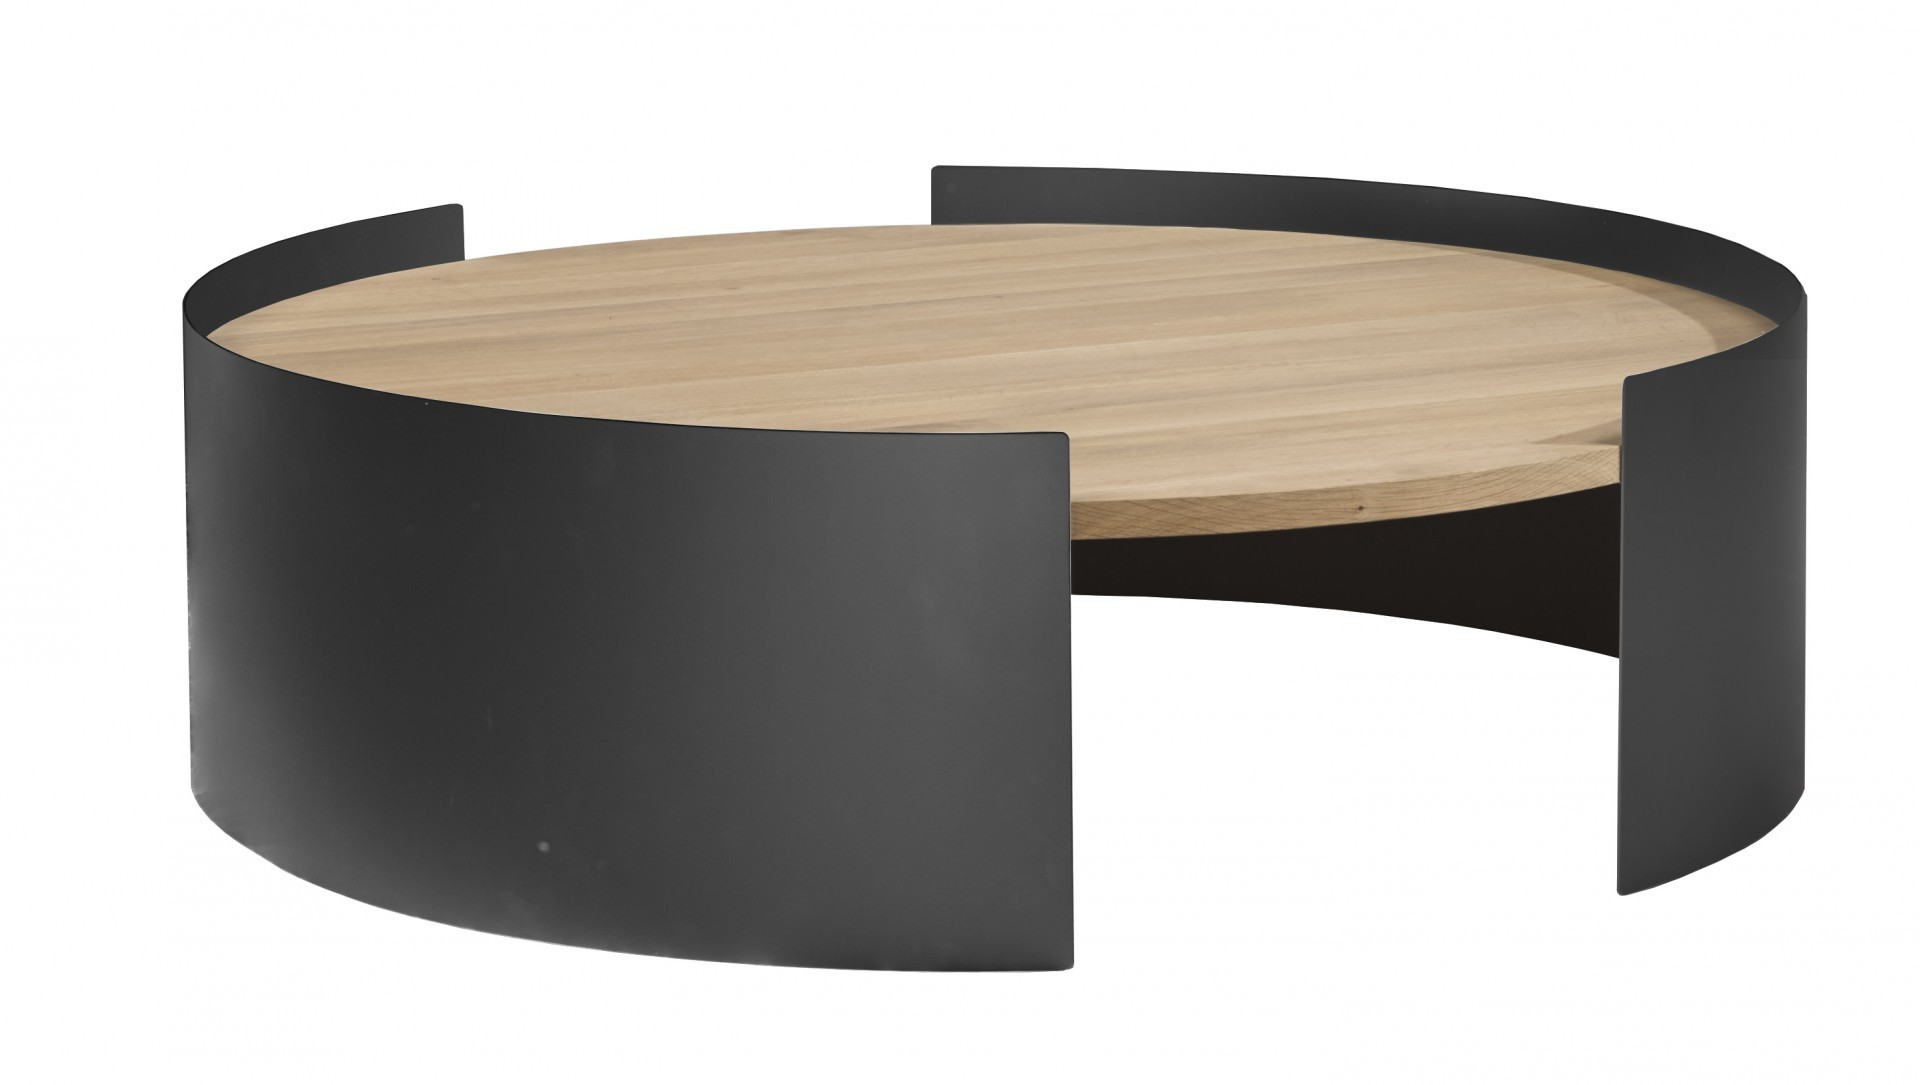 Permalink to Meilleur De De Table Basse Eclipse